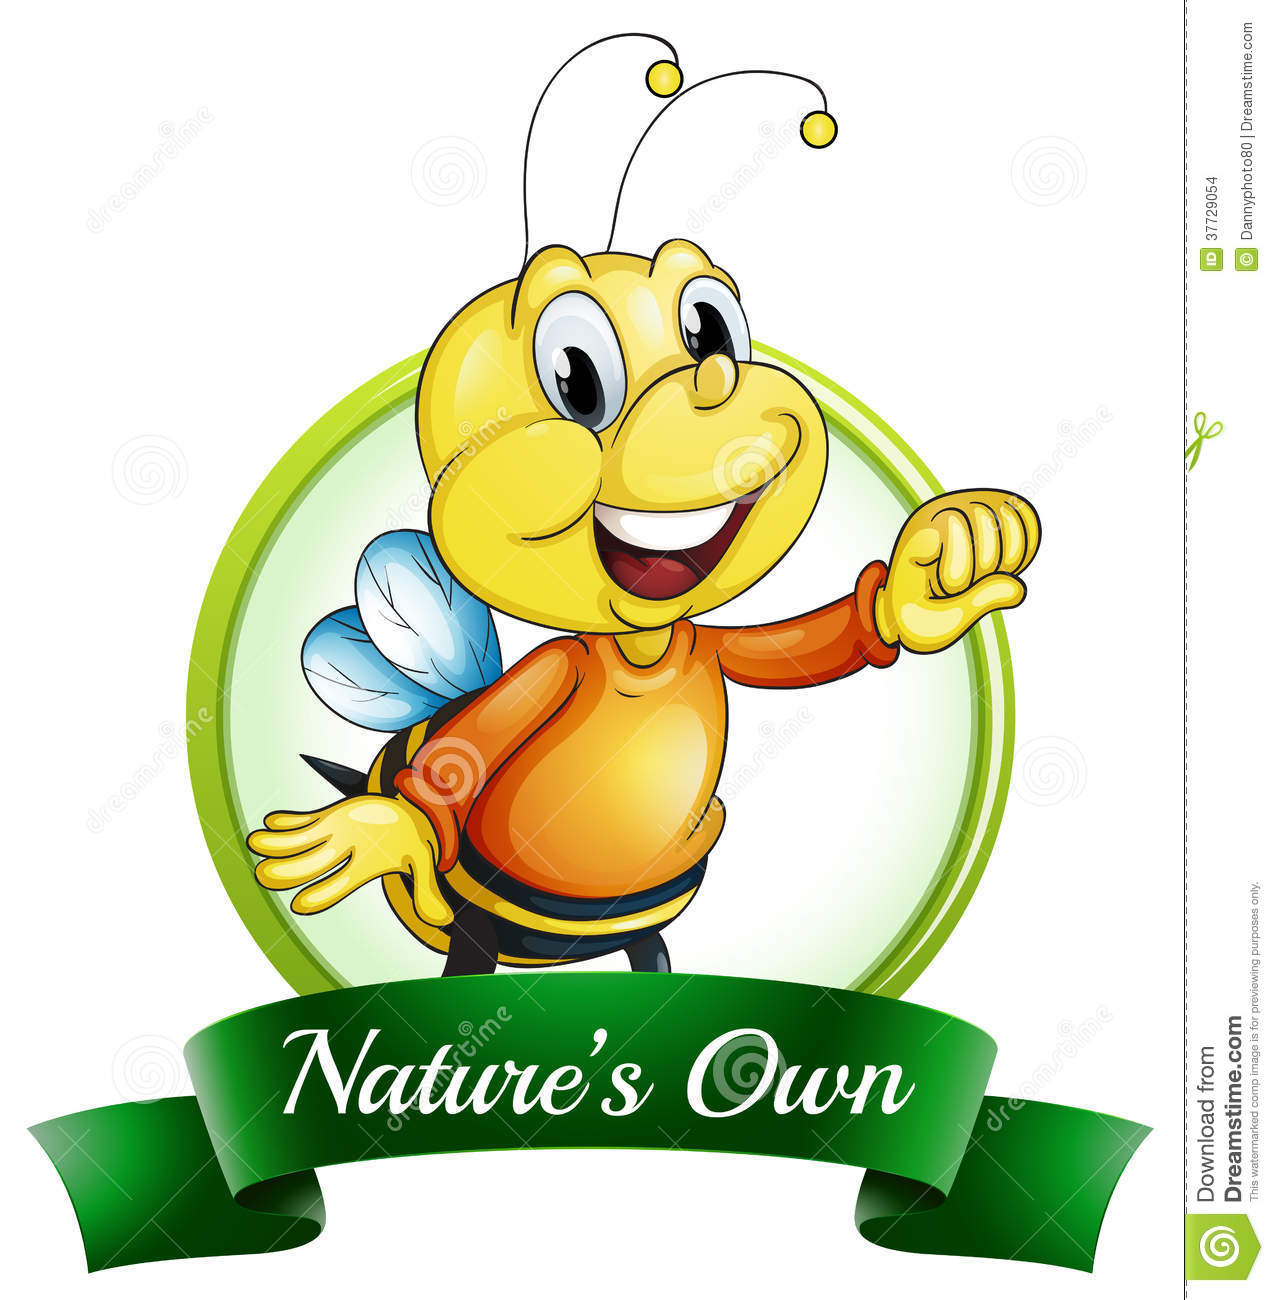 A Nature's Own Label With A Smiling Bee Stock Images.